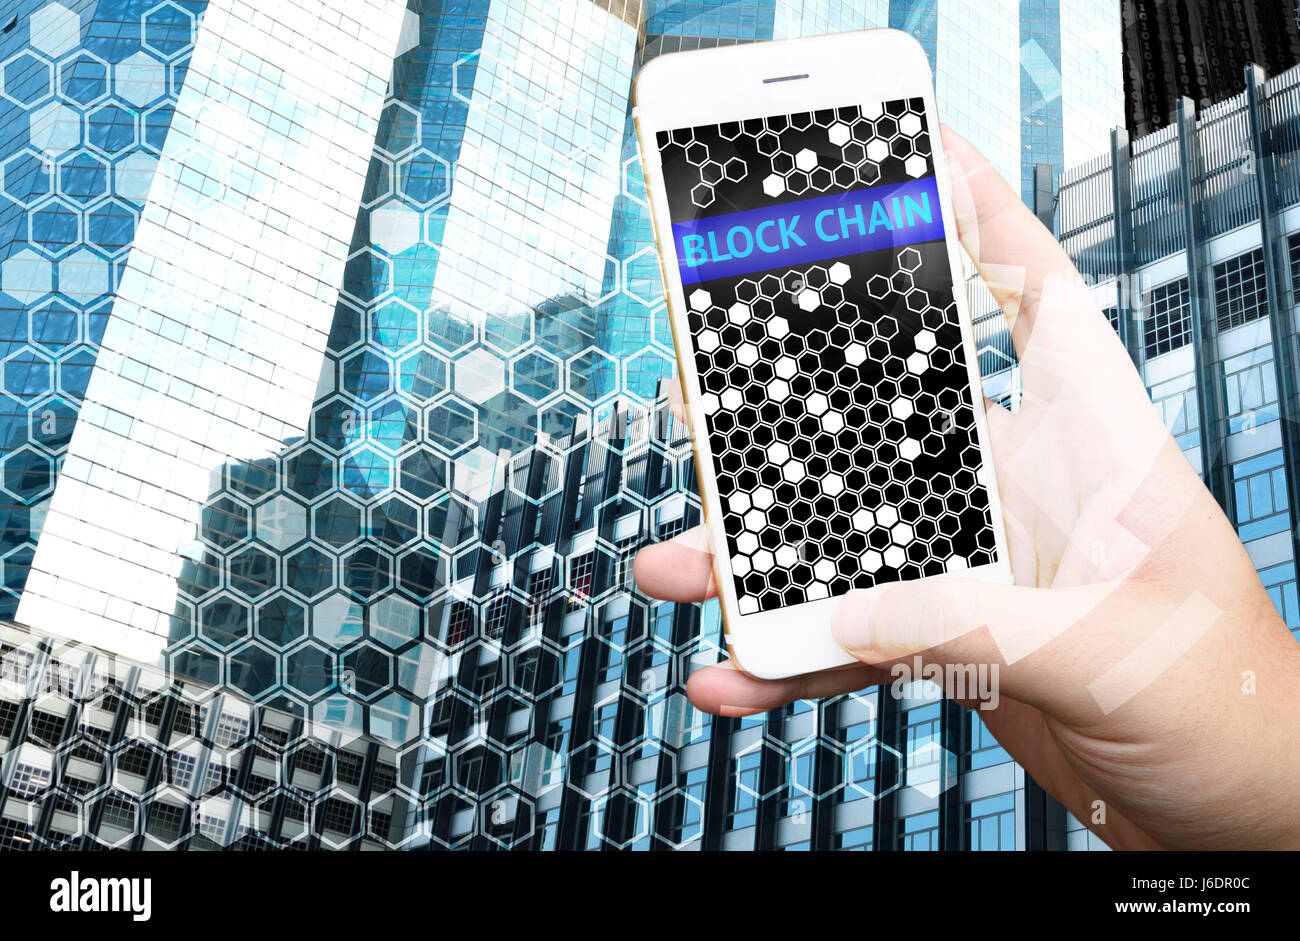 Distributed ledger technology , Man holding mobile phone, block chain text and blockchain icons with smart building - Stock Image